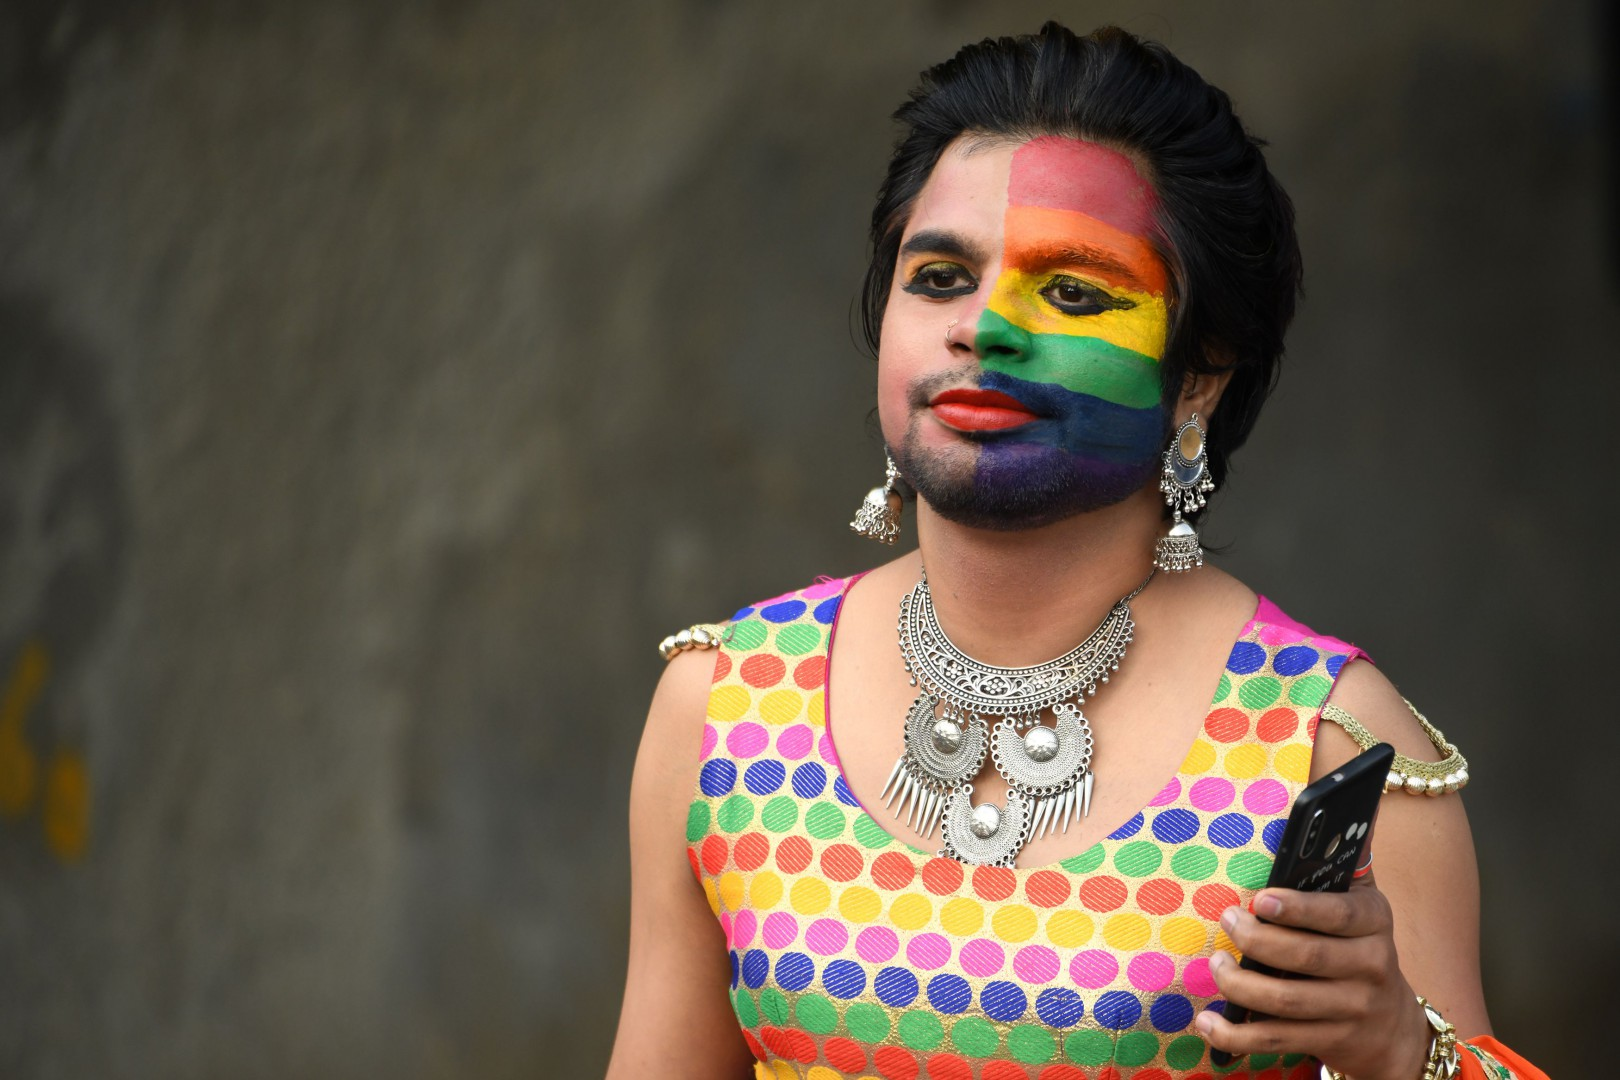 An Indian member of the lesbian, gay, bisexual, and transgender (LGBT) community takes part in a pride parade in New Delhi on November 25, 2018. - Thousands of people wearing garish outfits rallied in Indian capital on November 25 at the first Gay Pride parade after the landmark ruling by country's top court legalising gay sex. (Photo by Dominique FAGET / AFP)